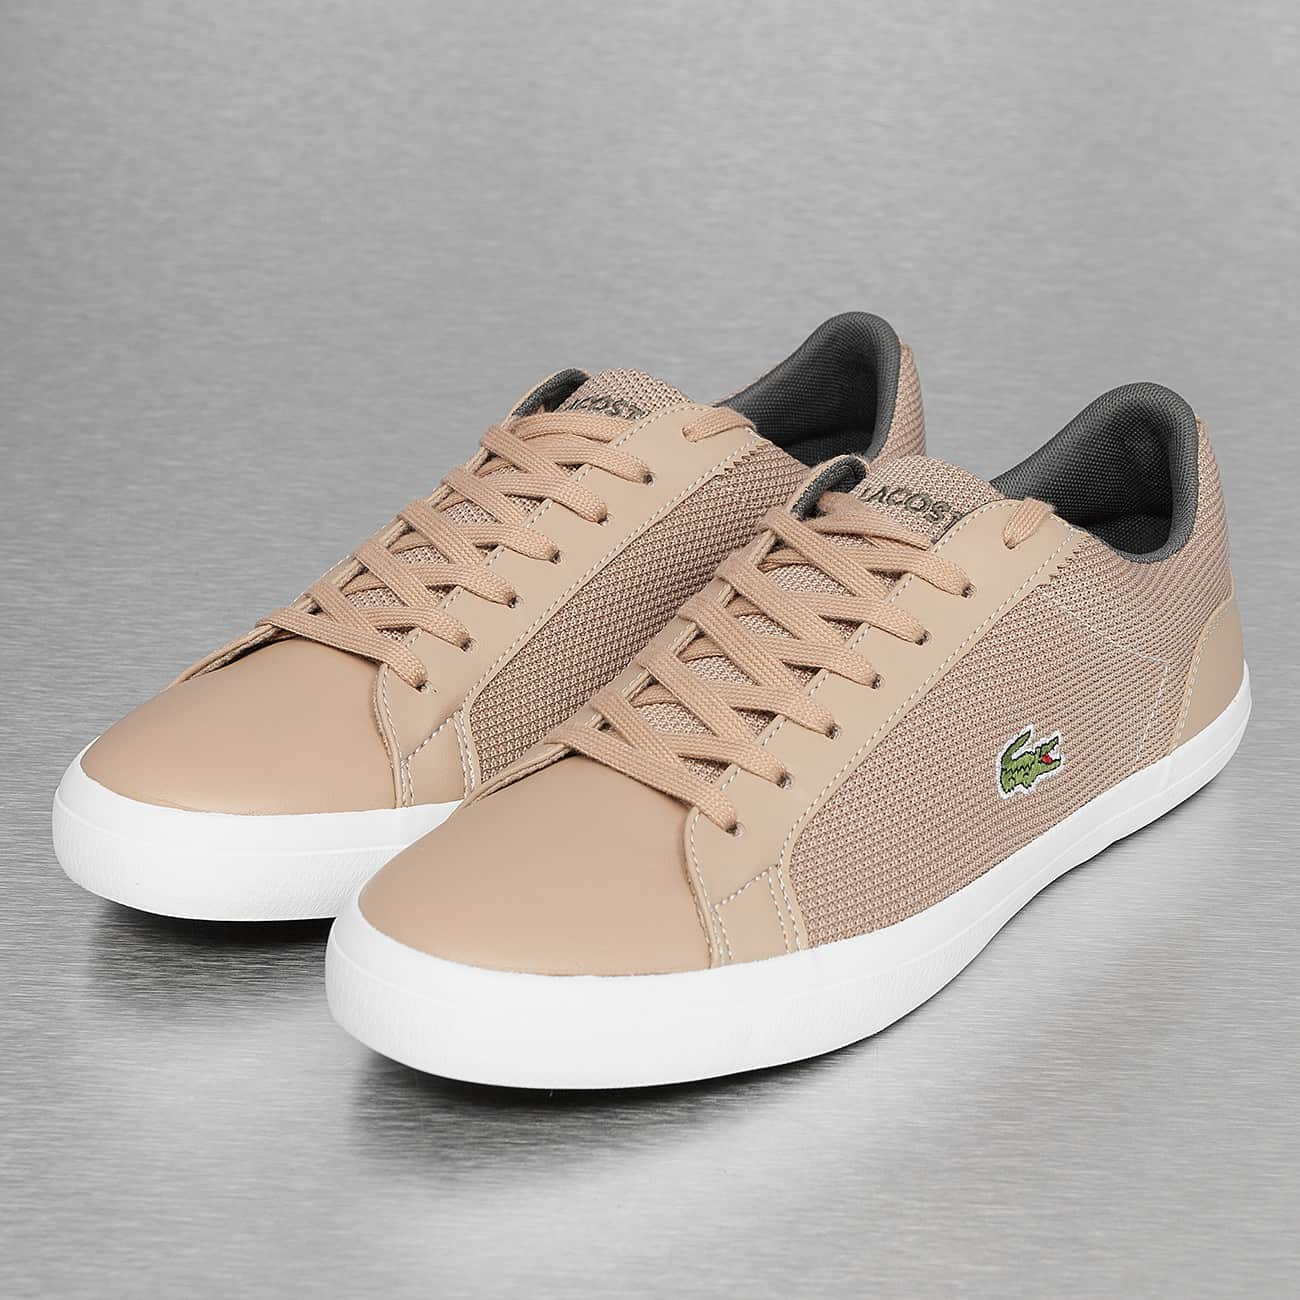 a405e28350 Lacoste Baskets Lerond 318 noir. BASKET lacoste carnaby ... ... Chaussures  Lacoste Carnaby EVO blanche et rose perle vue dessus